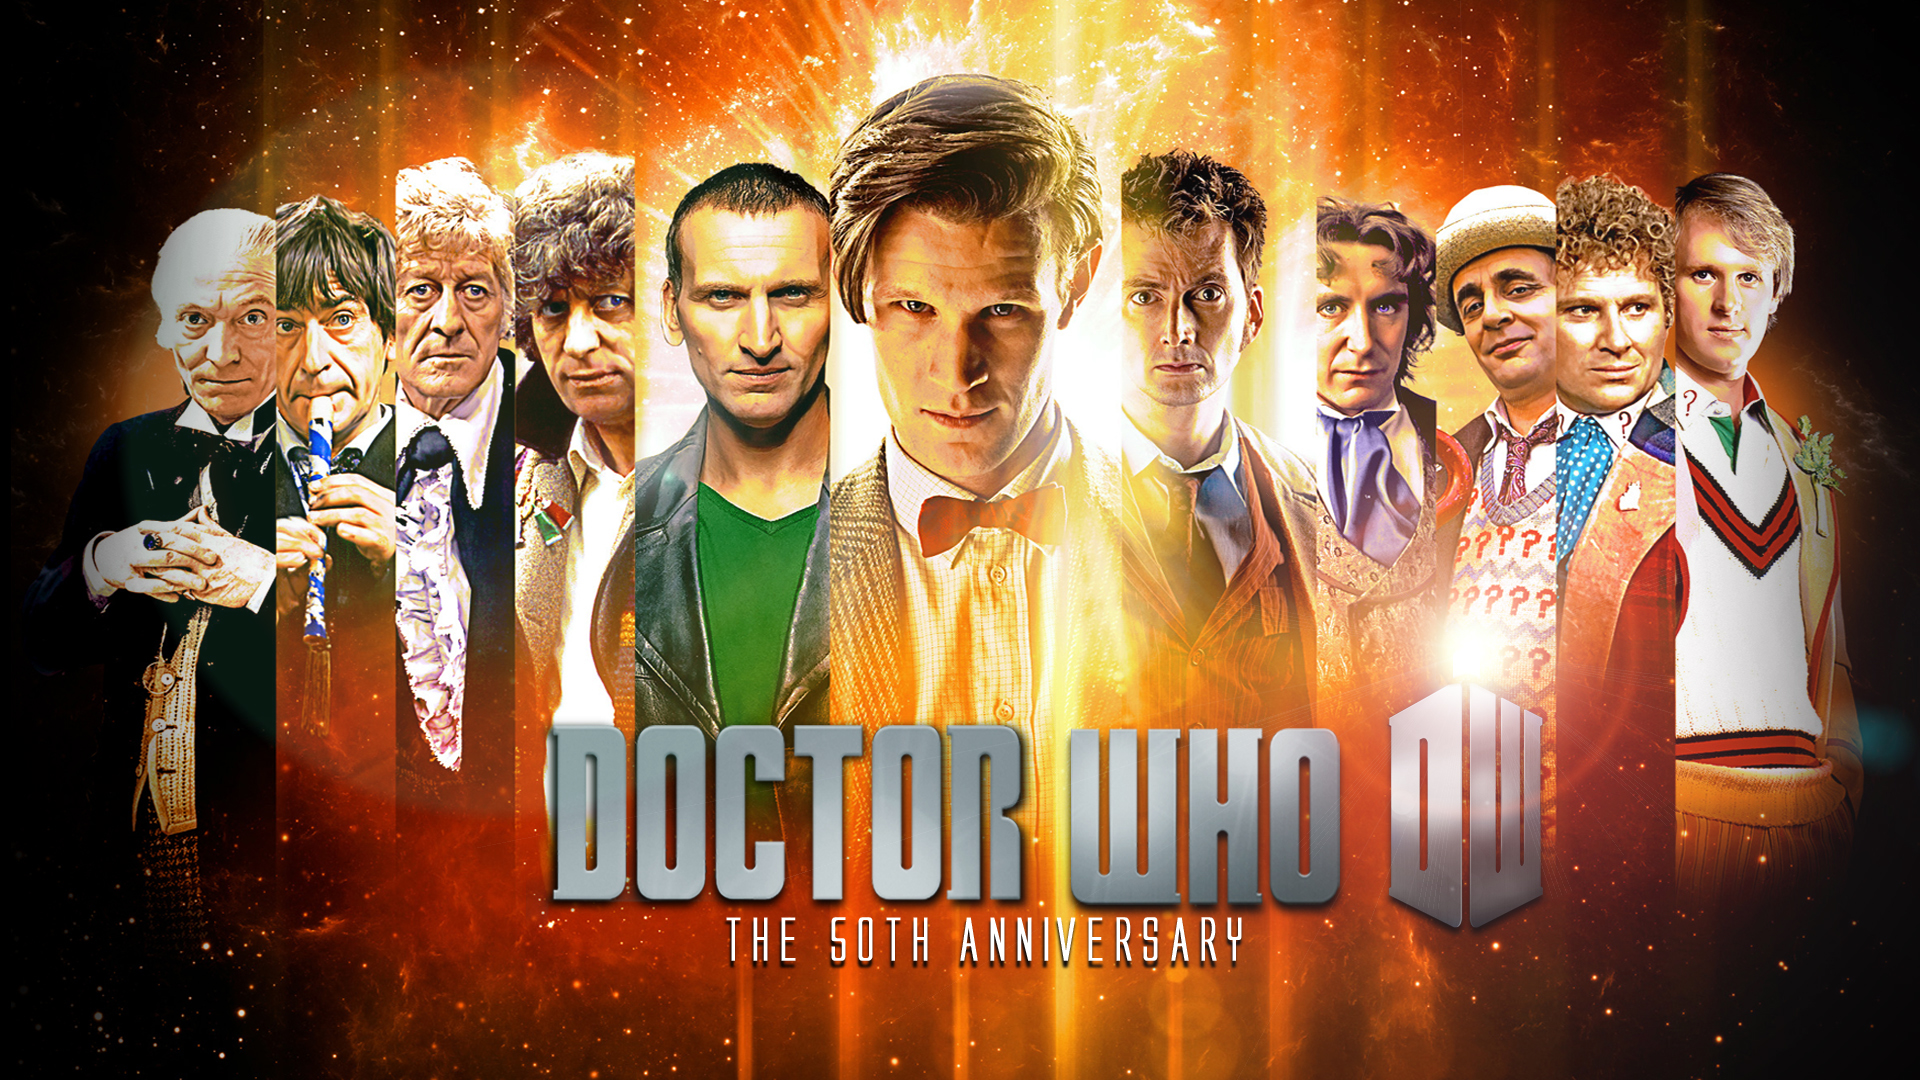 Doctor Who: The 50th Anniversary